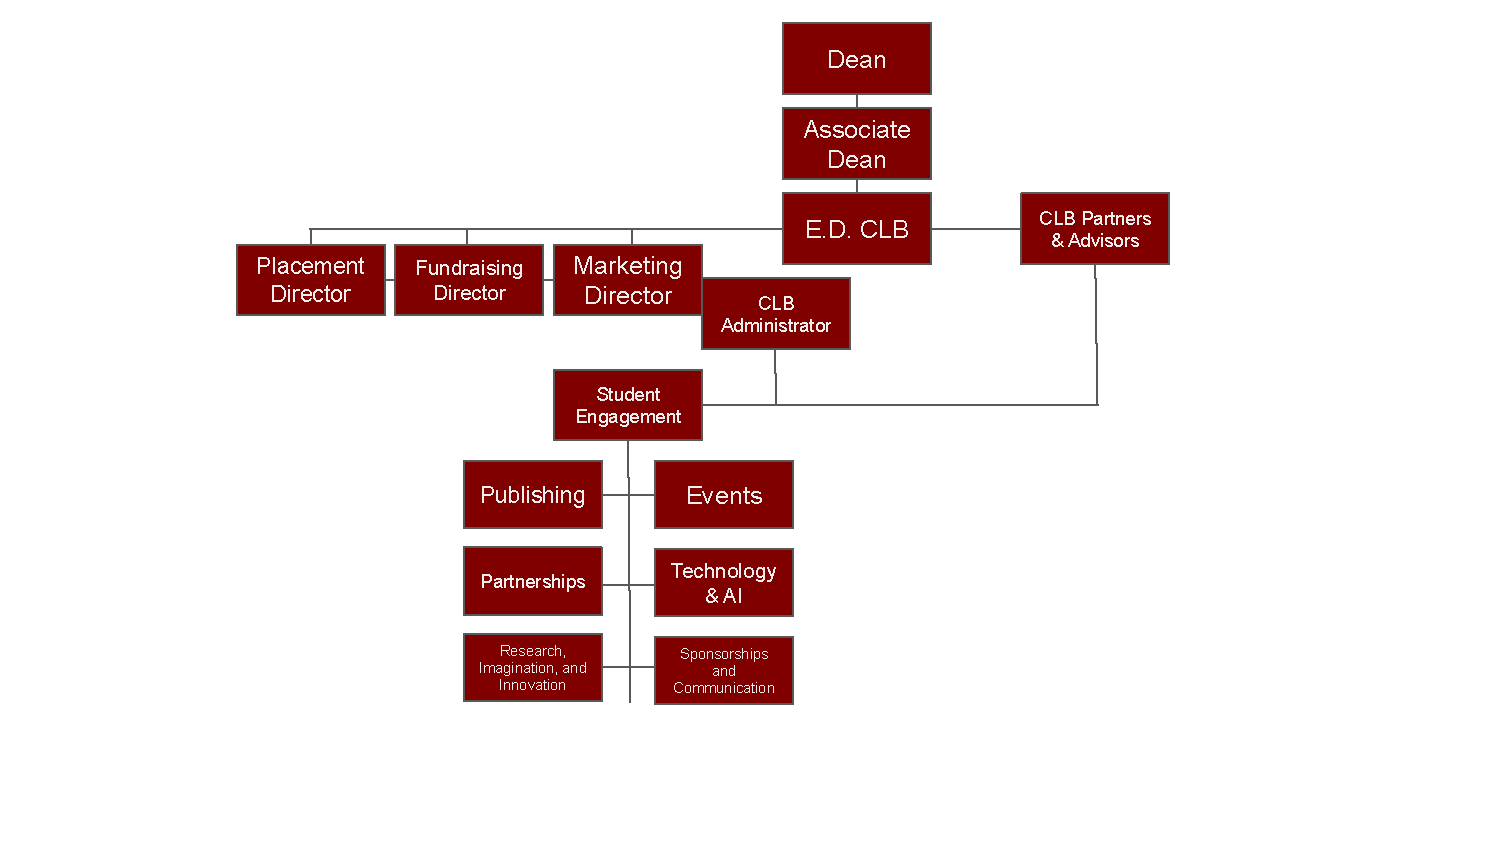 Center for Law and Business Organization Chart